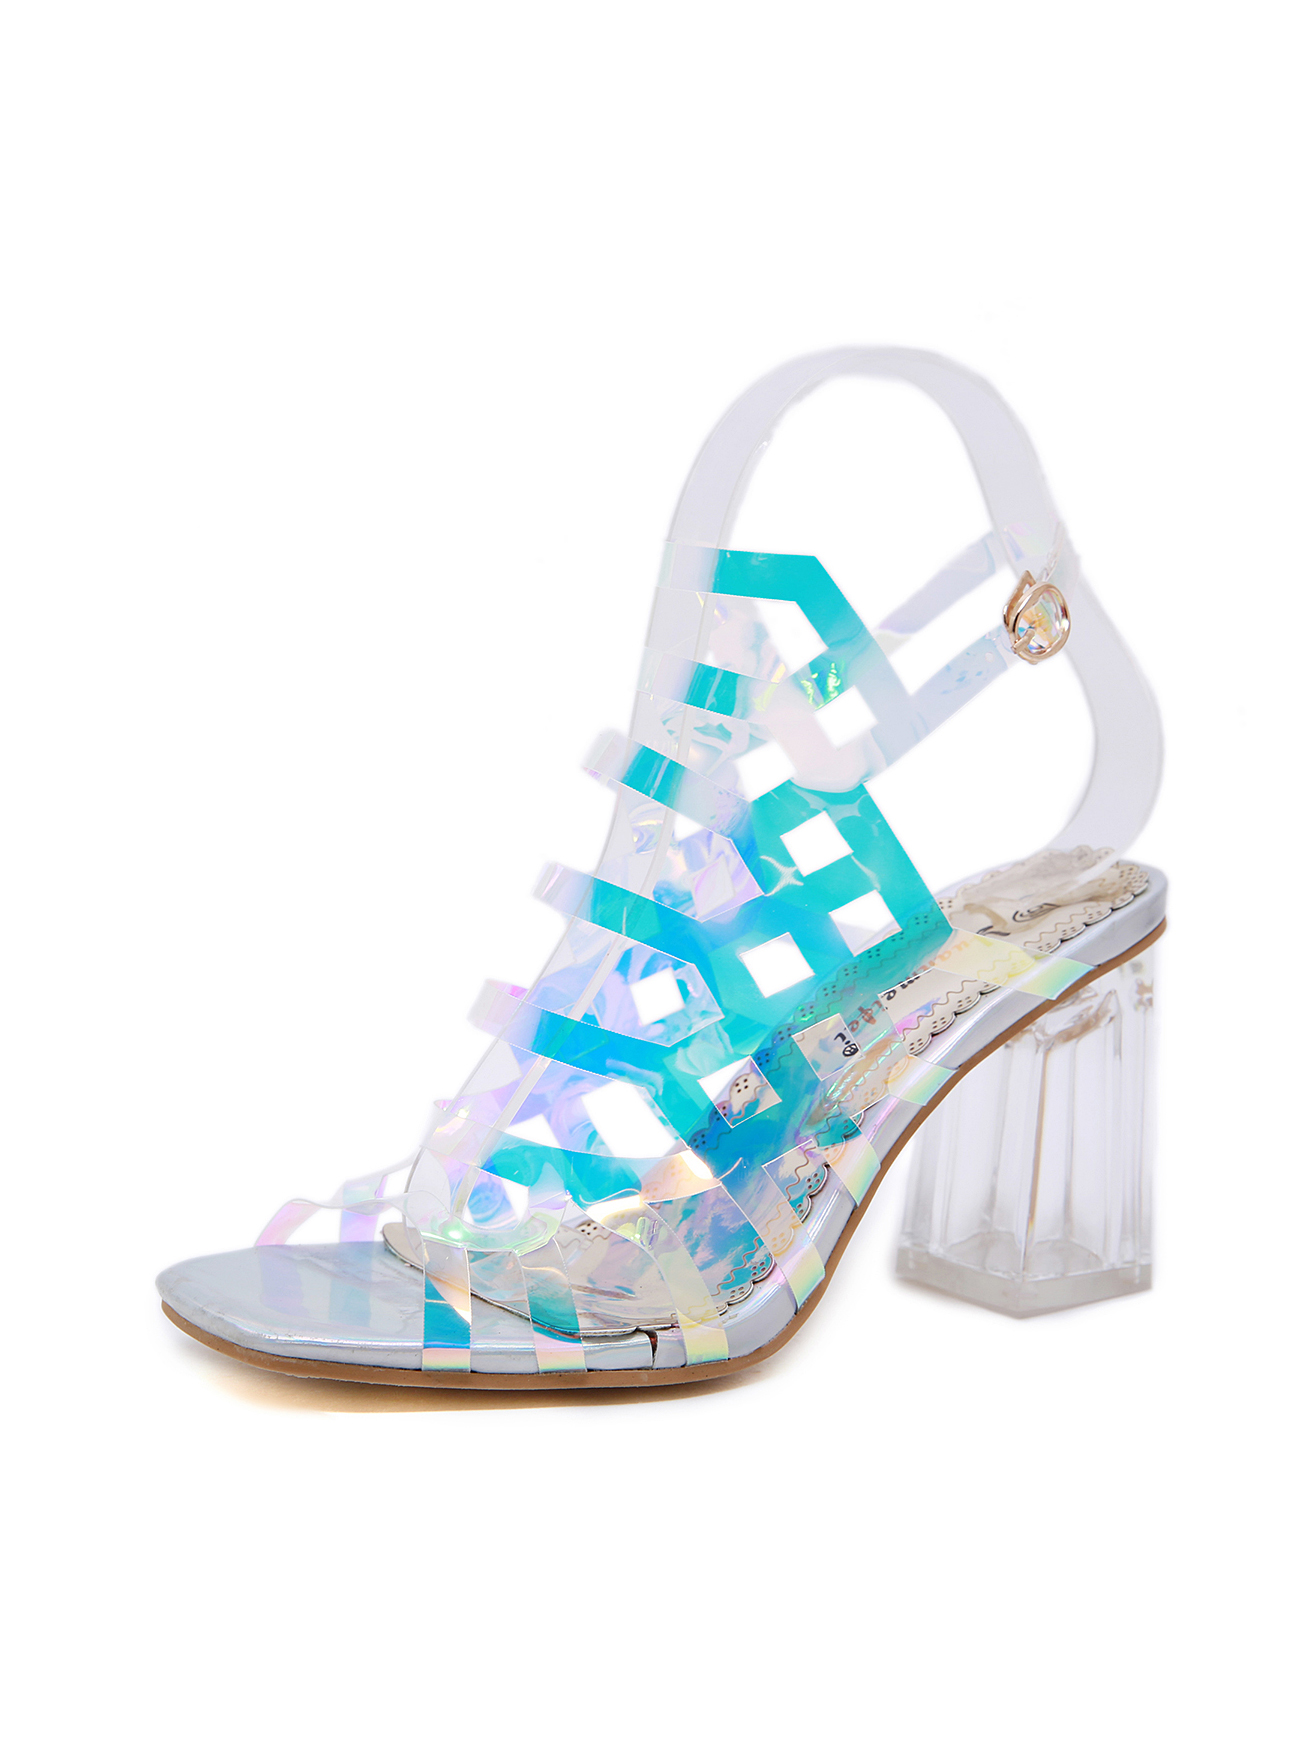 Hollow Out Transparent Square Toe Buckle Strap Chunky Sandal